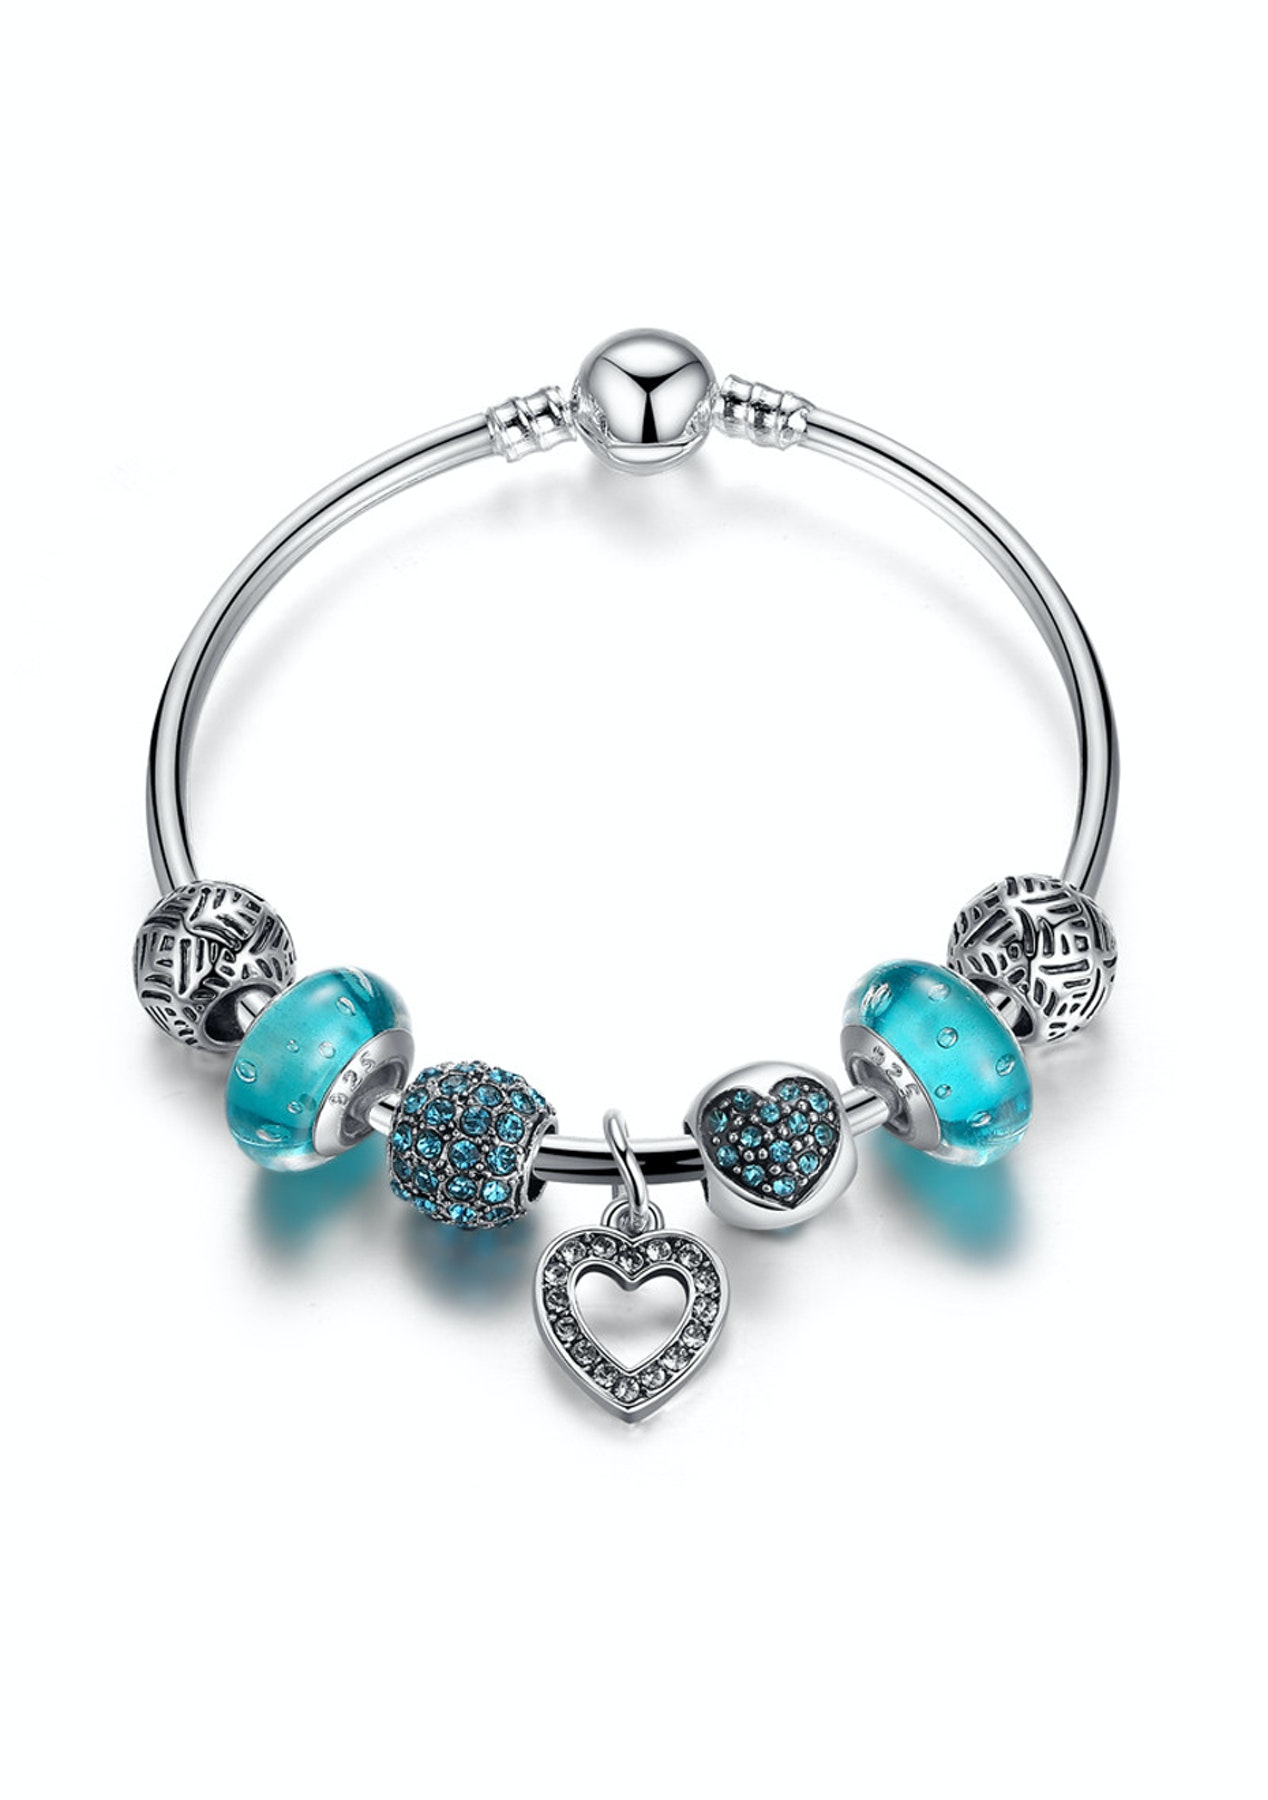 the winter of art review bangle charms bangles charm feature theartofpandora pandora heart more